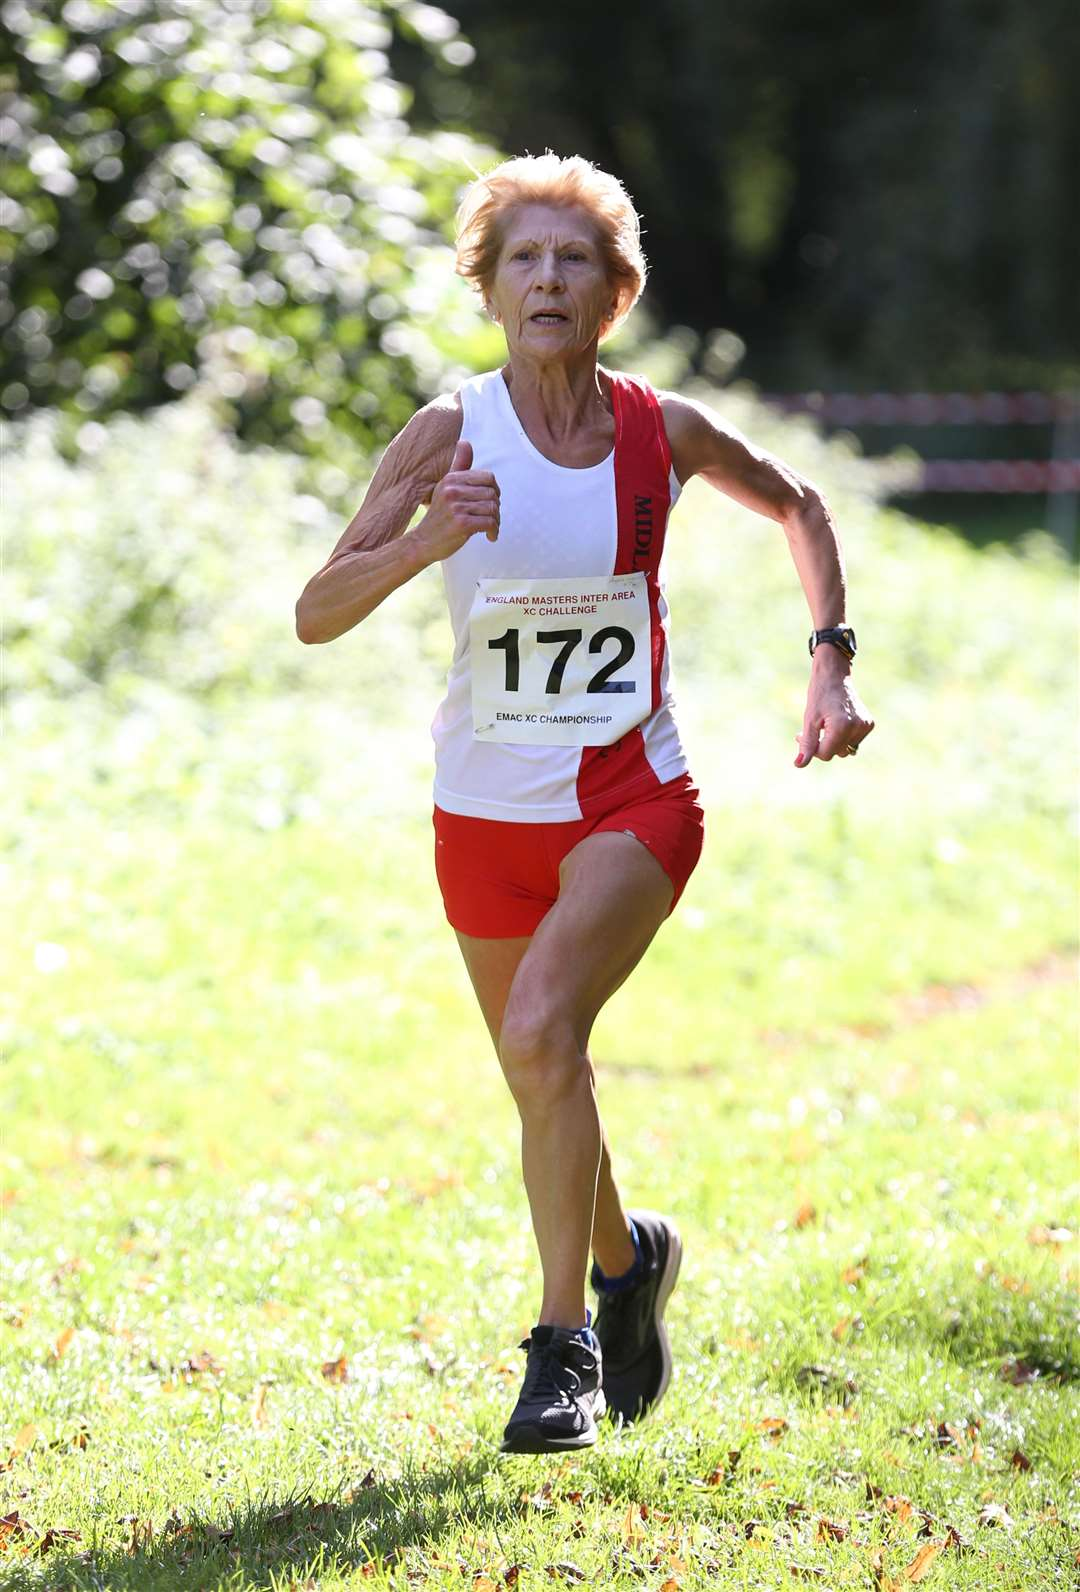 Race 1 at the England Masters Inter-Area X-Country championships held at Nowton Park in Bury St Edmunds - Angela Coulson competes in the Over 70s category..Pic - Richard Marsham. (4579985)